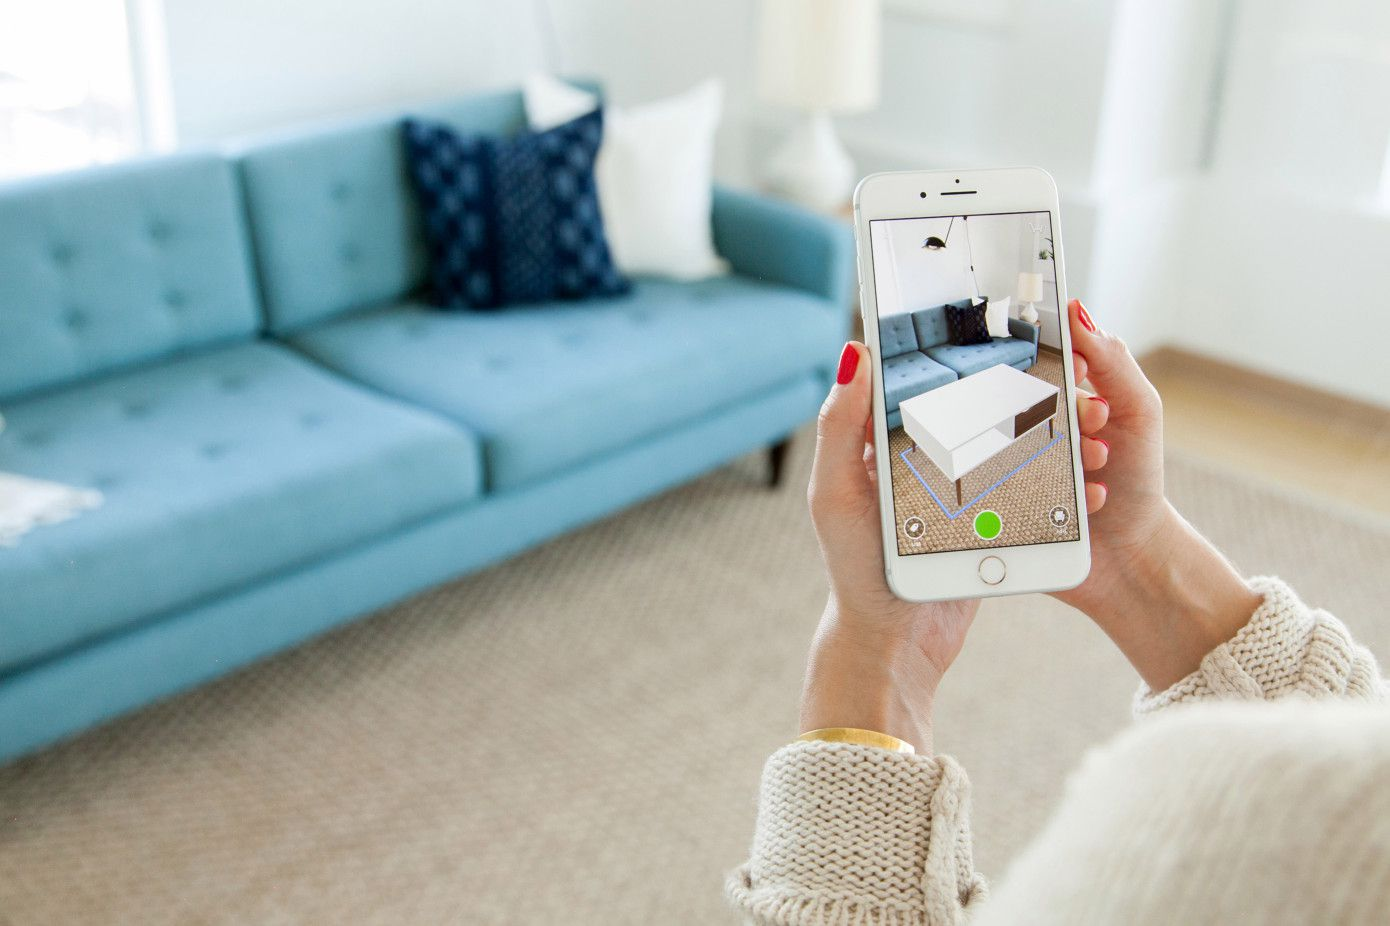 Woman's hands holding smartphone with camera aimed at living room couch.